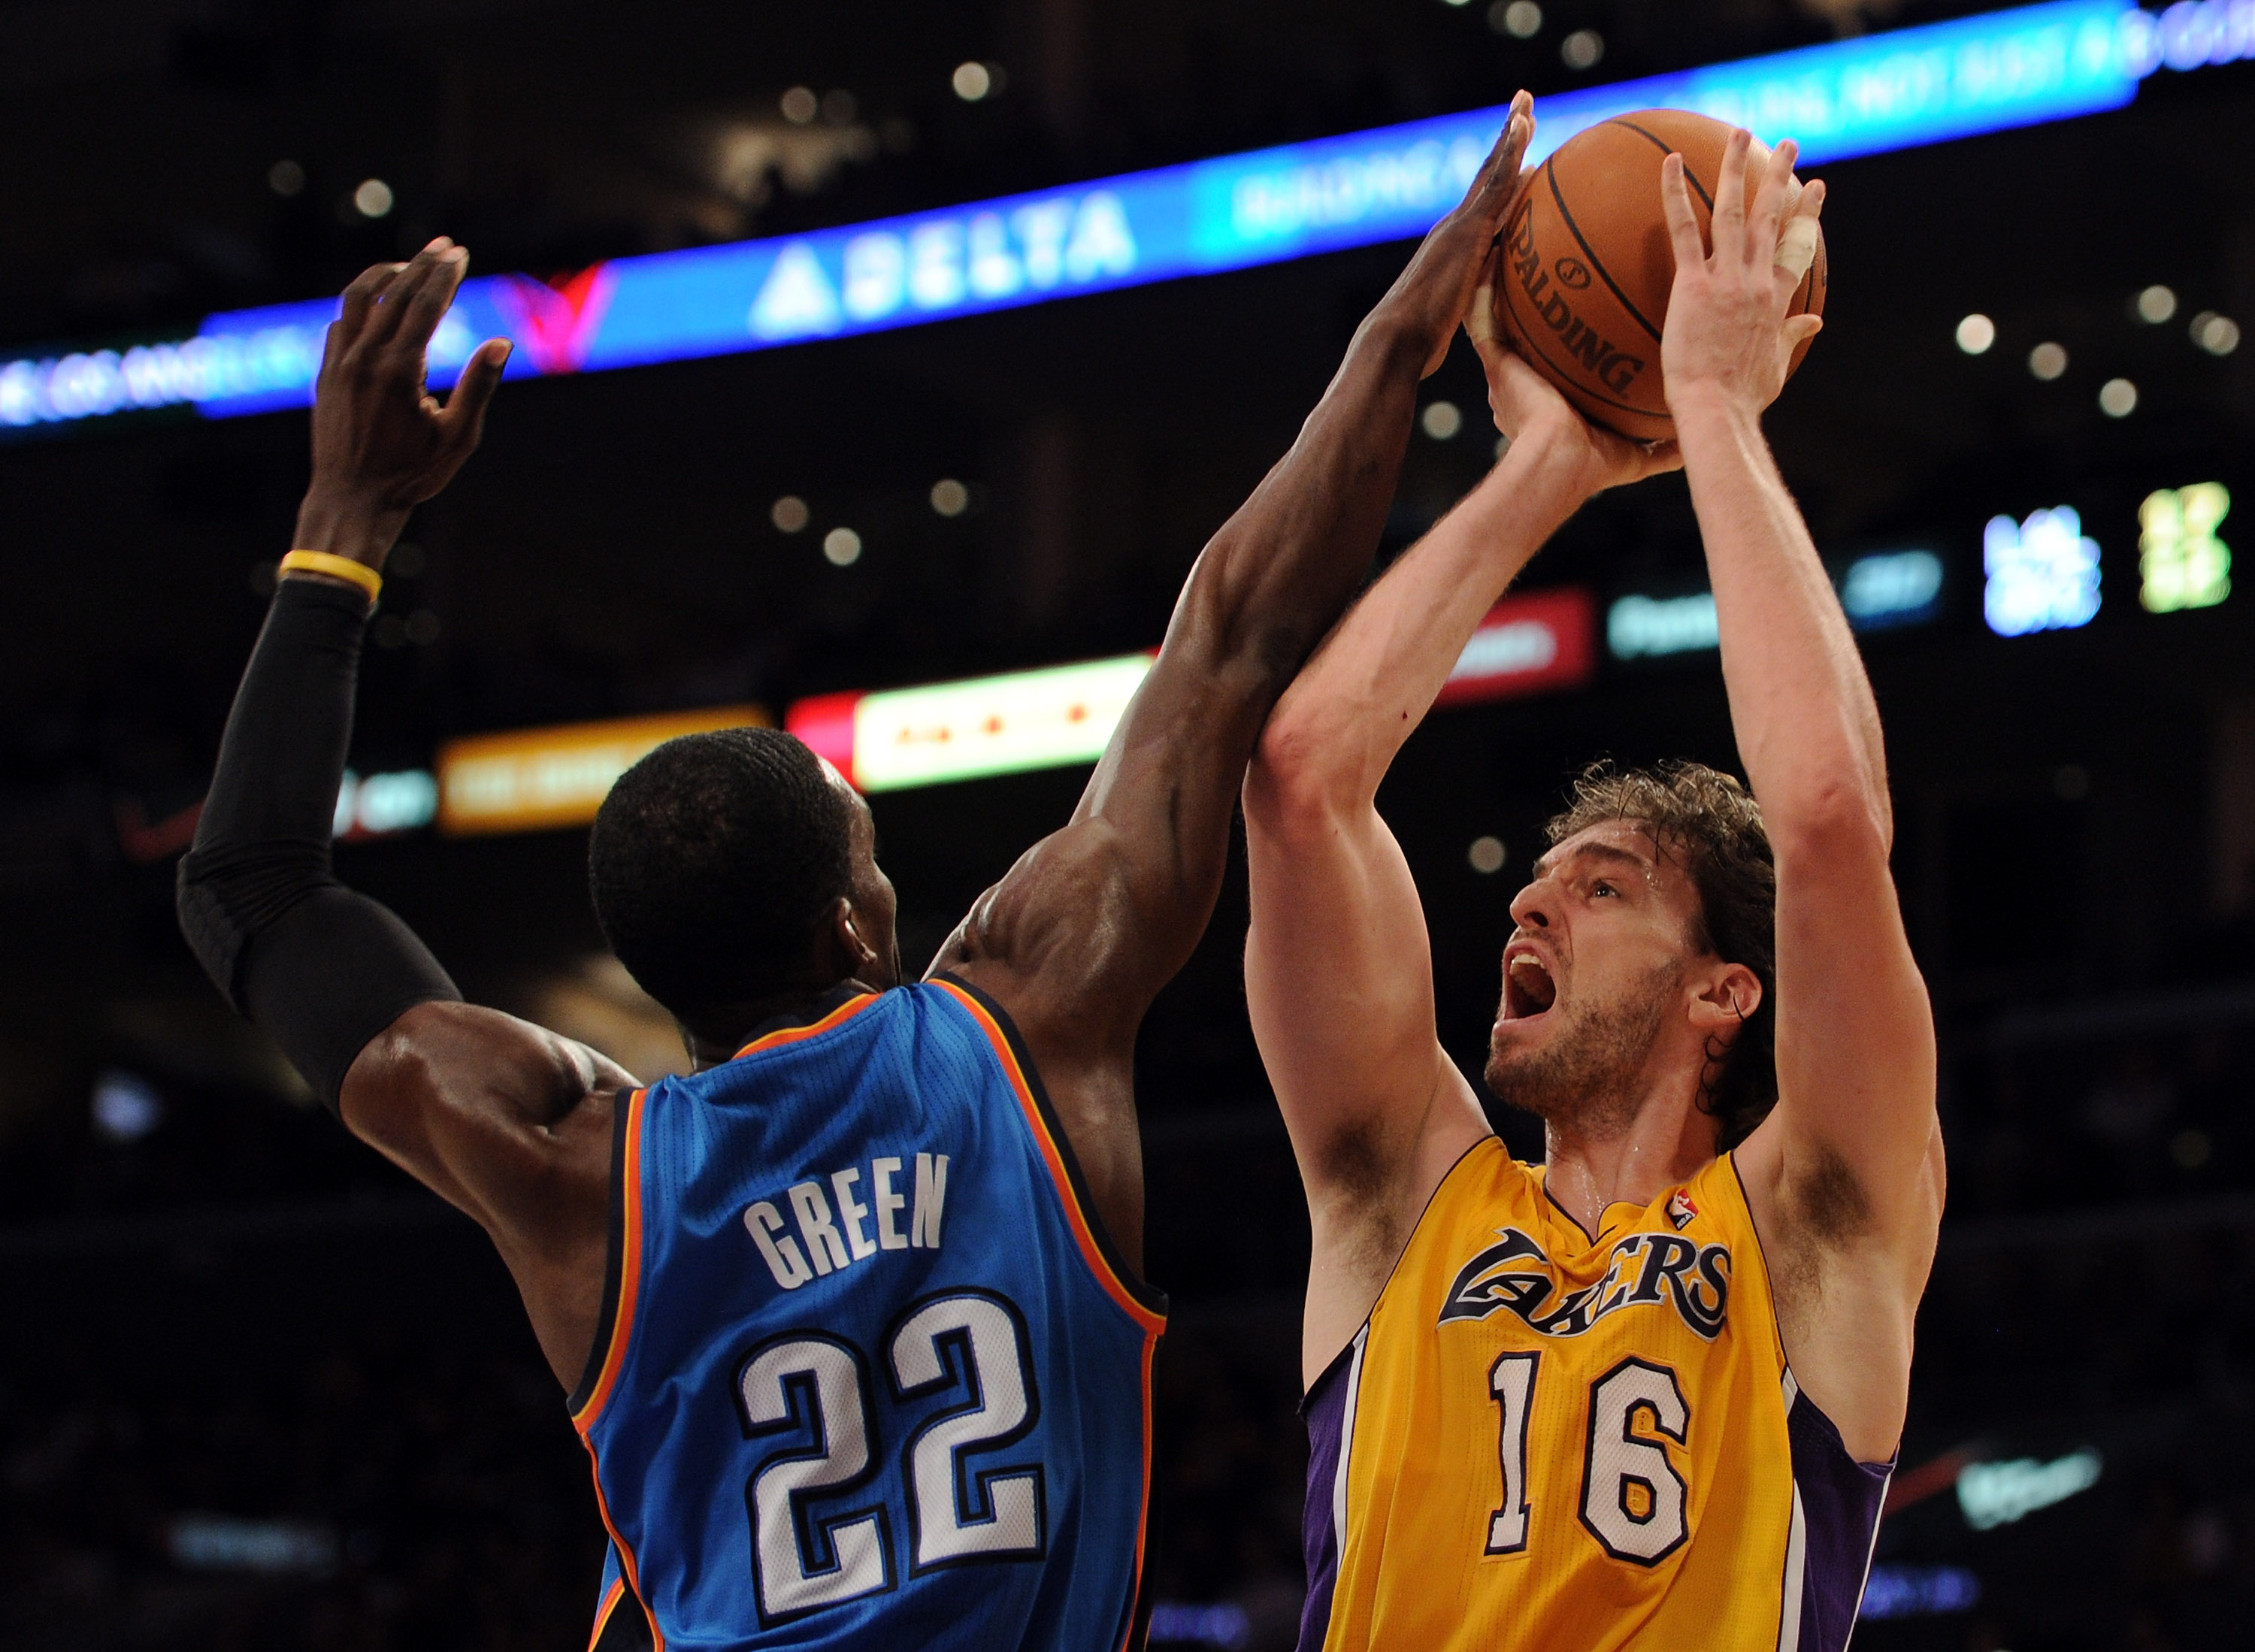 LOS ANGELES, CA - JANUARY 17:  Pau Gasol #16 of the Los Angeles Lakers has his shot blocked by Jeff Green #22 of the Oklahoma City Thunder at the Staples Center on January 17, 2011 in Los Angeles, California.  (Photo by Harry How/Getty Images)   NOTE TO U